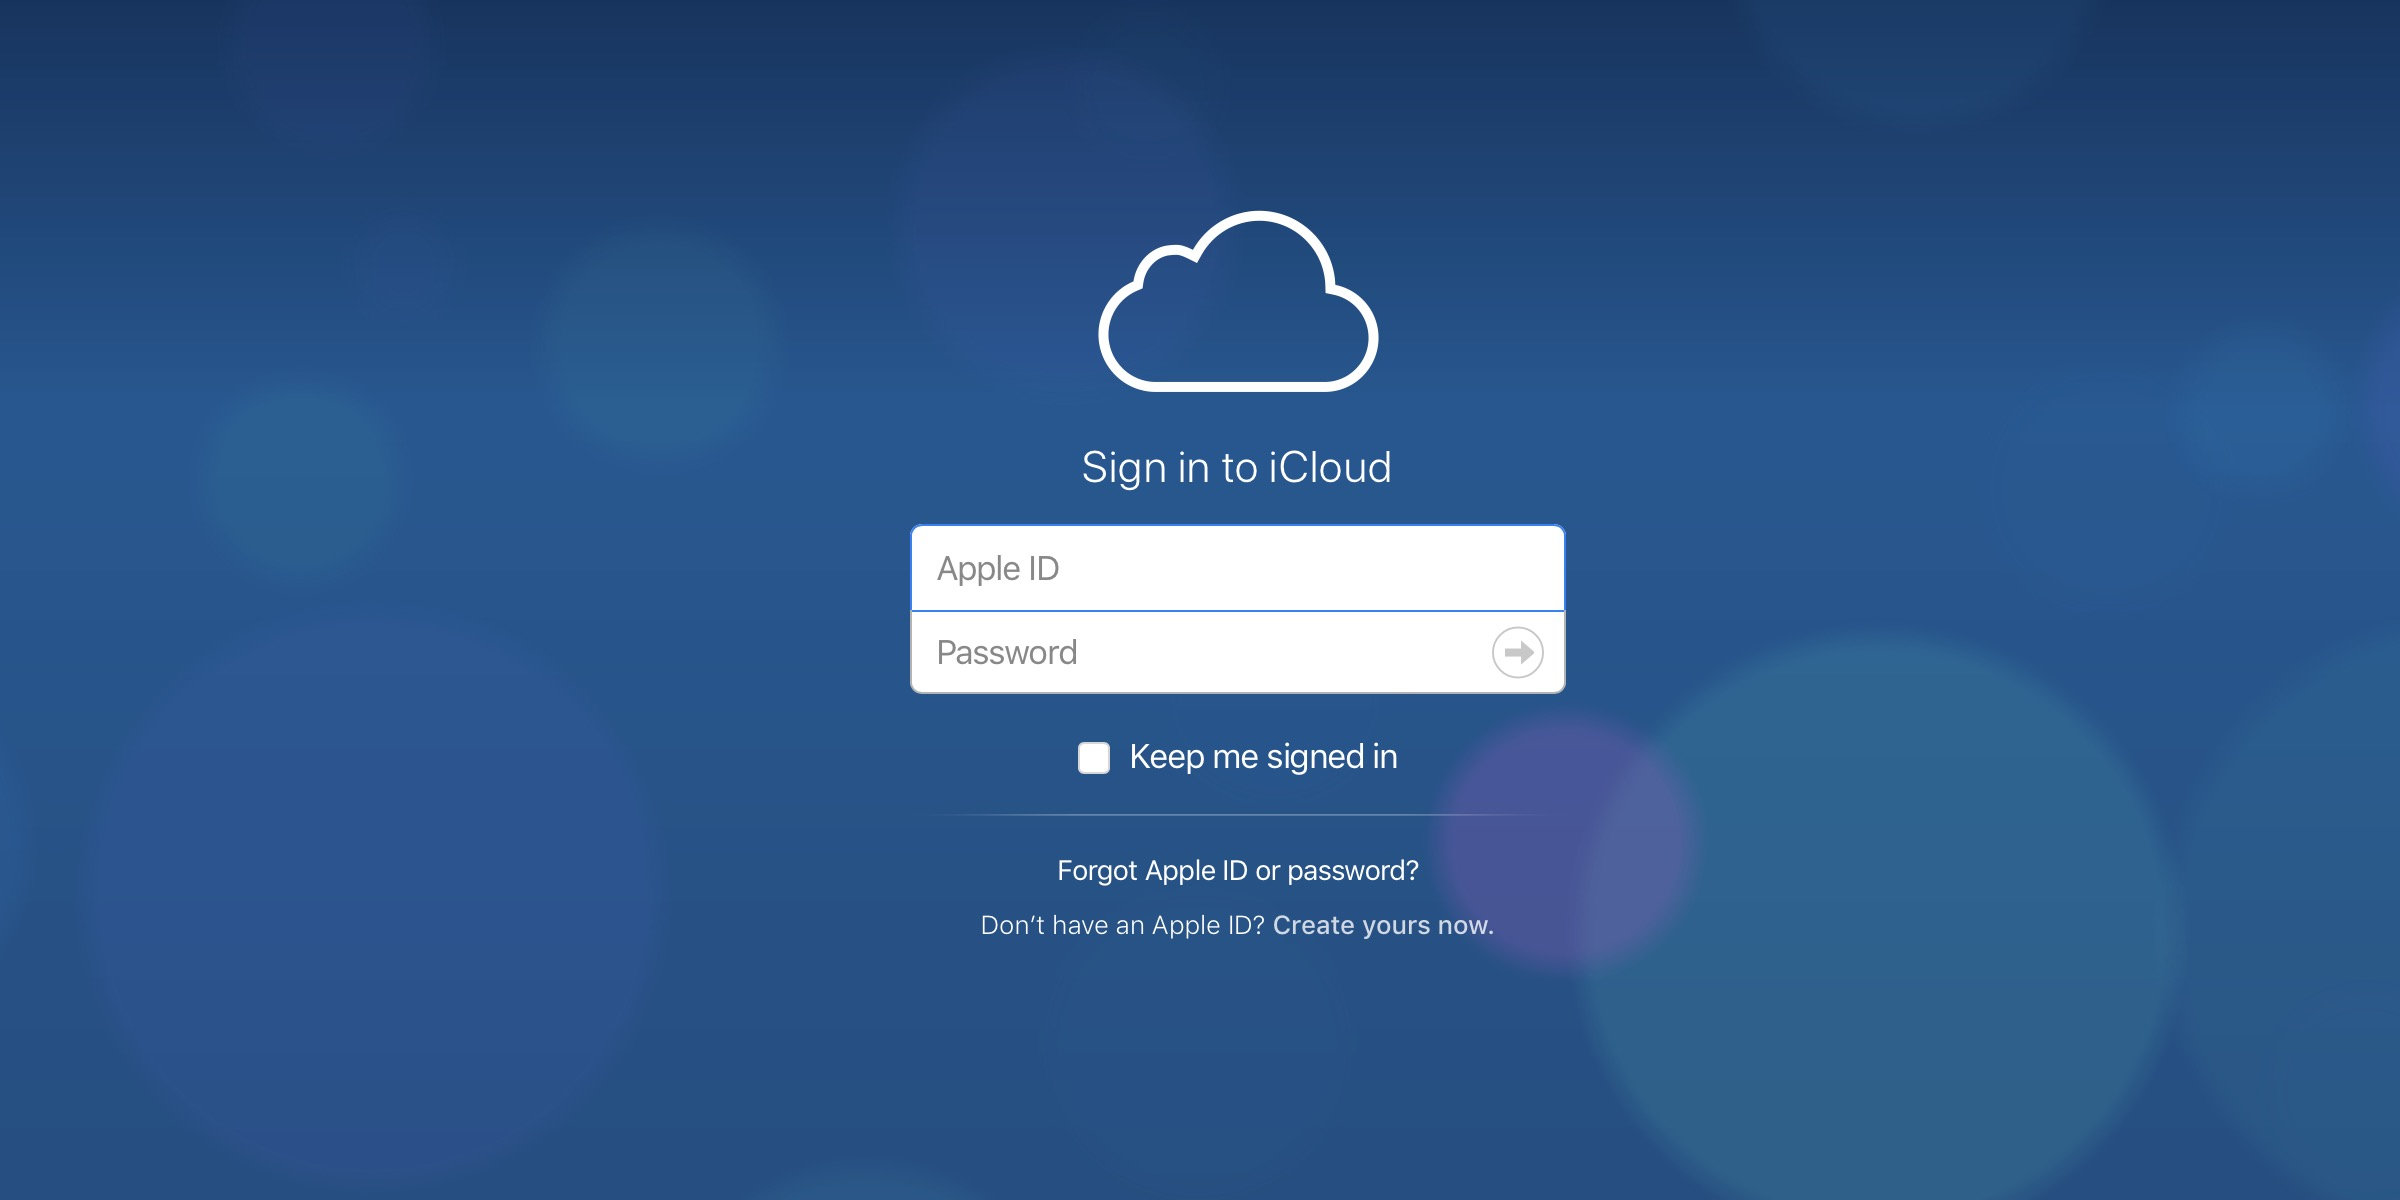 former high school teacher pleads guilty to accessing over 200 icloud accounts as part of 2014 celebgate